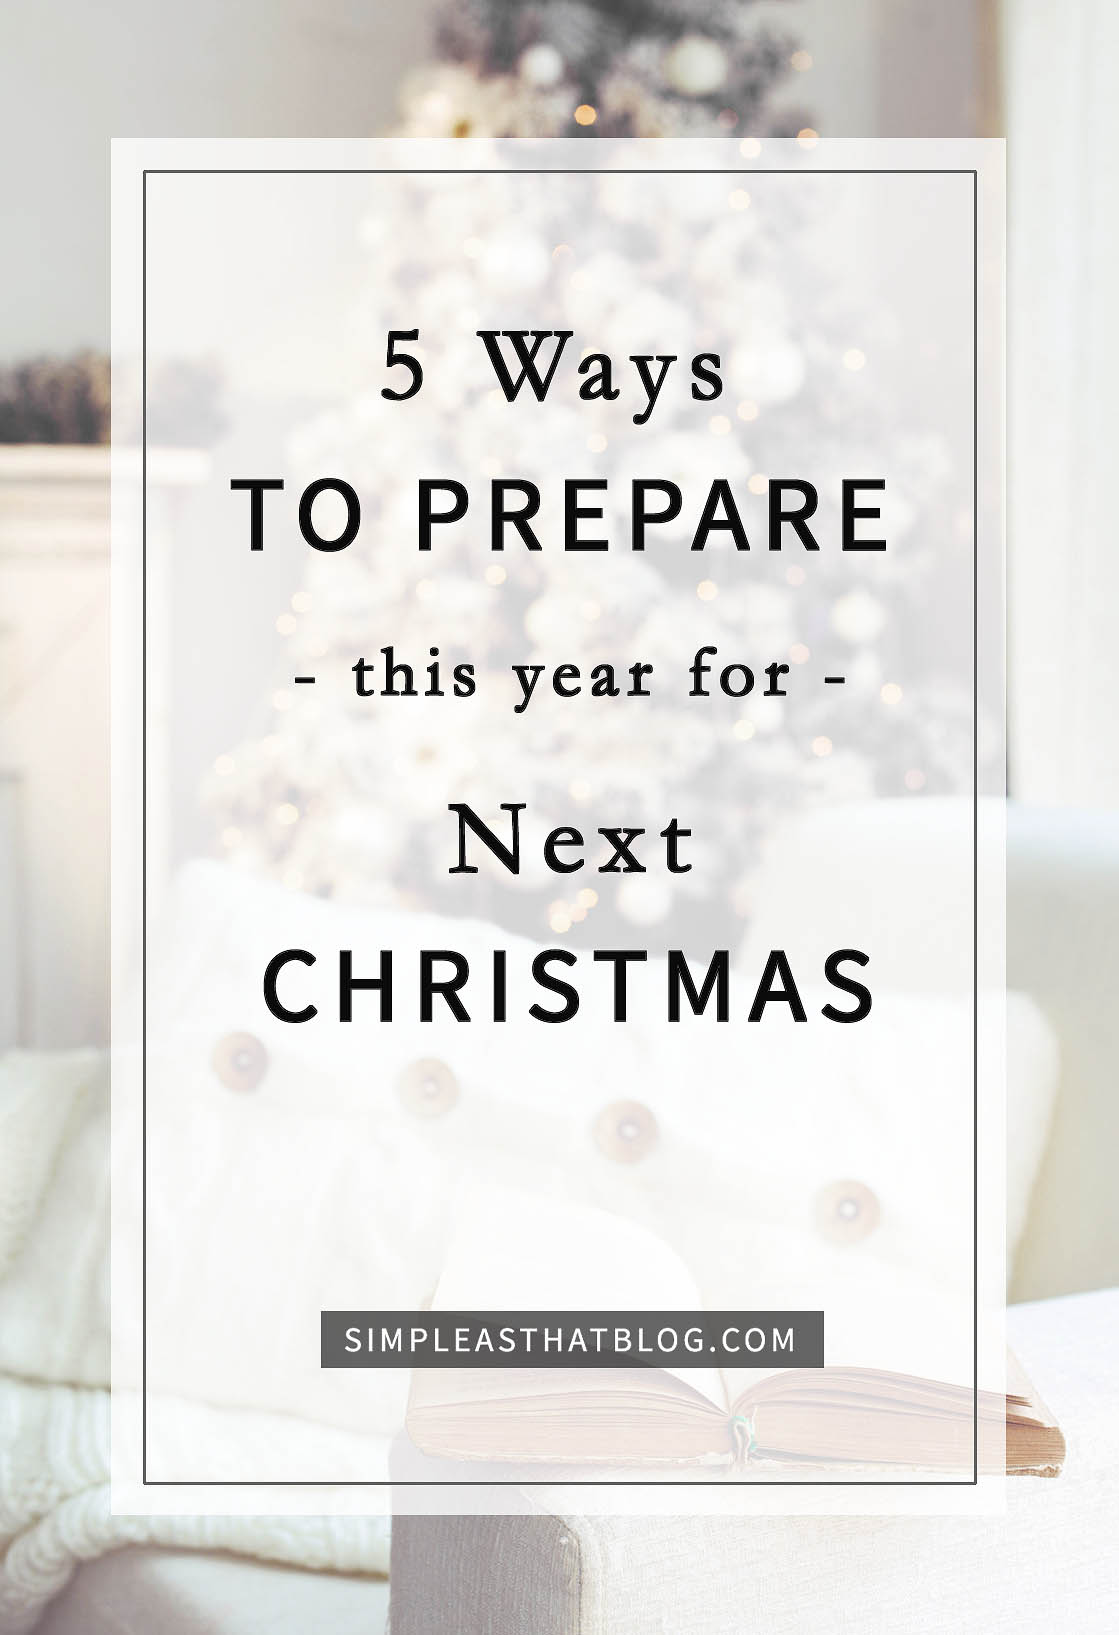 5 Ways to Prepare This Year for NEXT Christmas